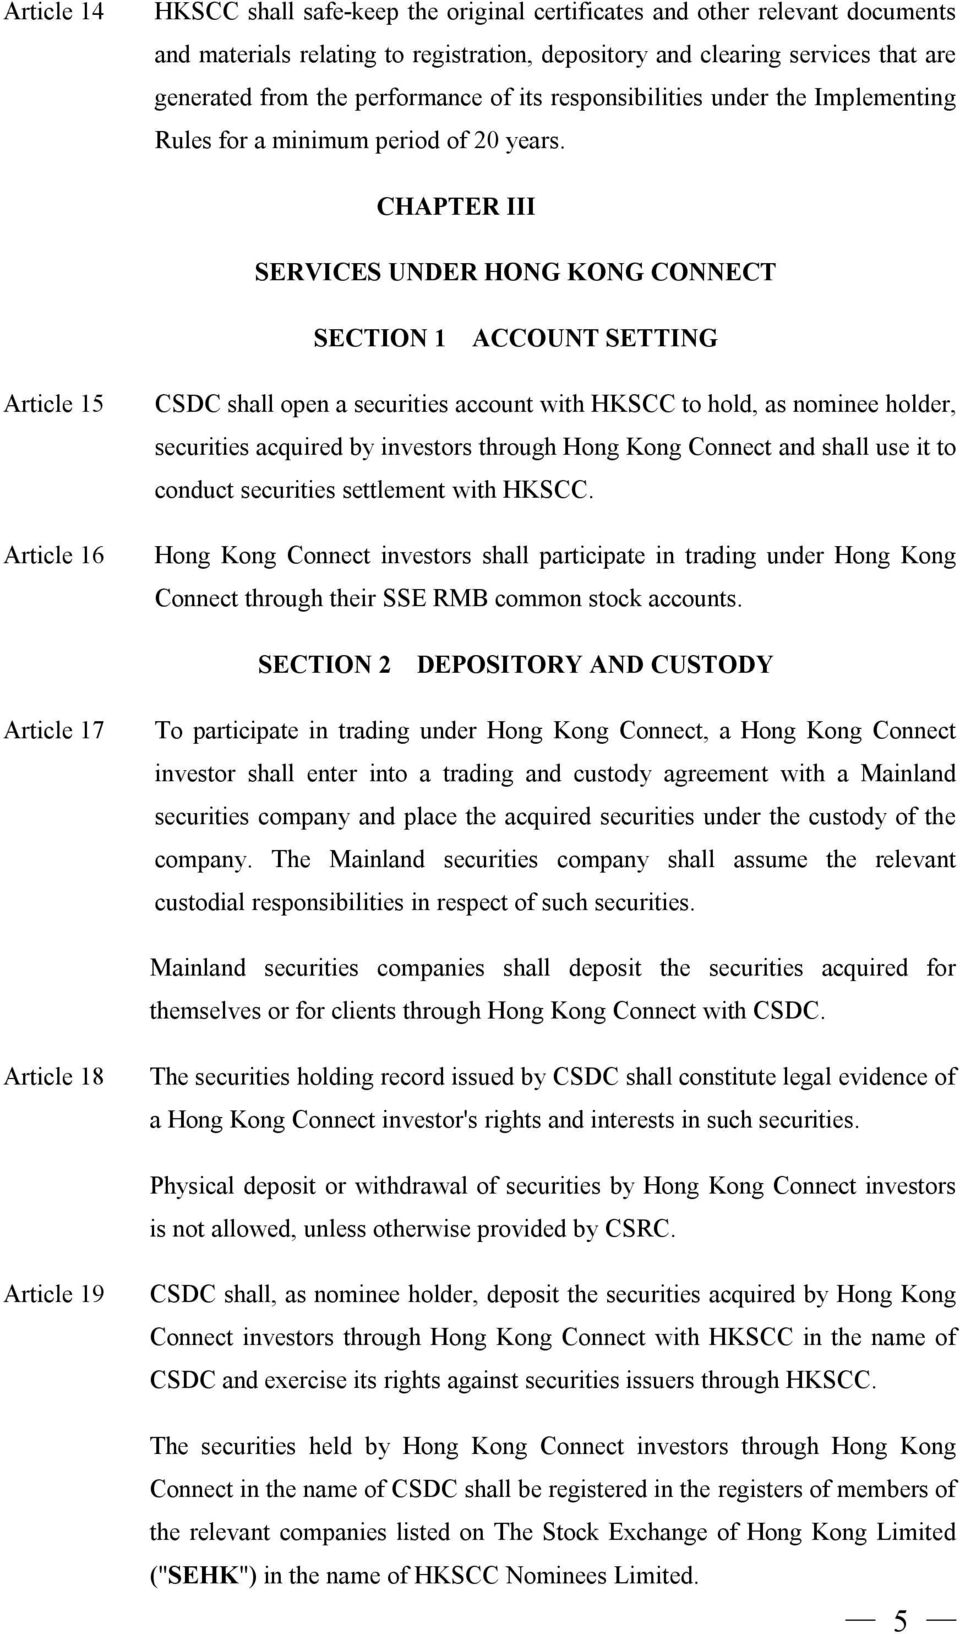 CHAPTER III SERVICES UNDER HONG KONG CONNECT SECTION 1 ACCOUNT SETTING Article 15 Article 16 CSDC shall open a securities account with HKSCC to hold, as nominee holder, securities acquired by